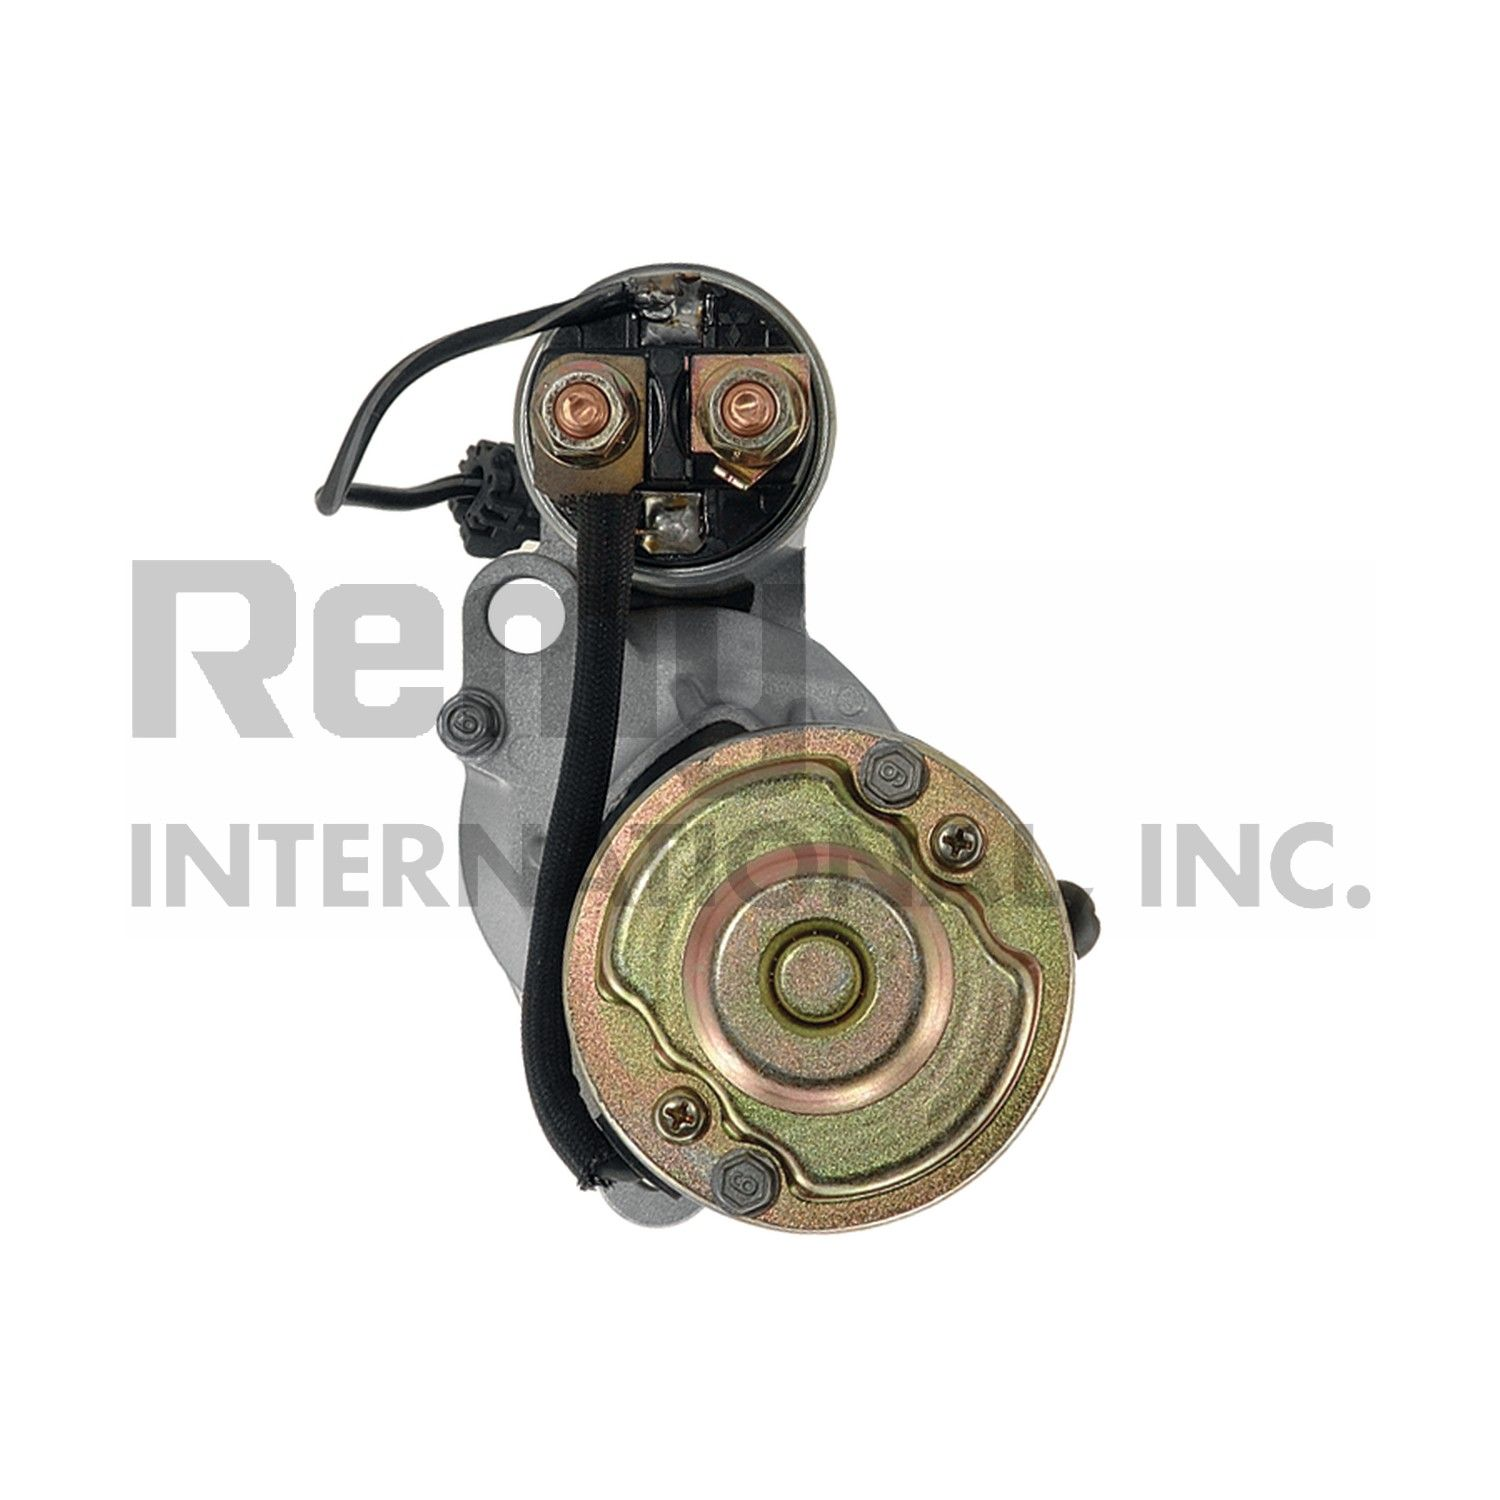 2001 Nissan Pathfinder Starter Motor Recomended Car 3 5l Engine Diagram Replacement Bosch Denso Mpa